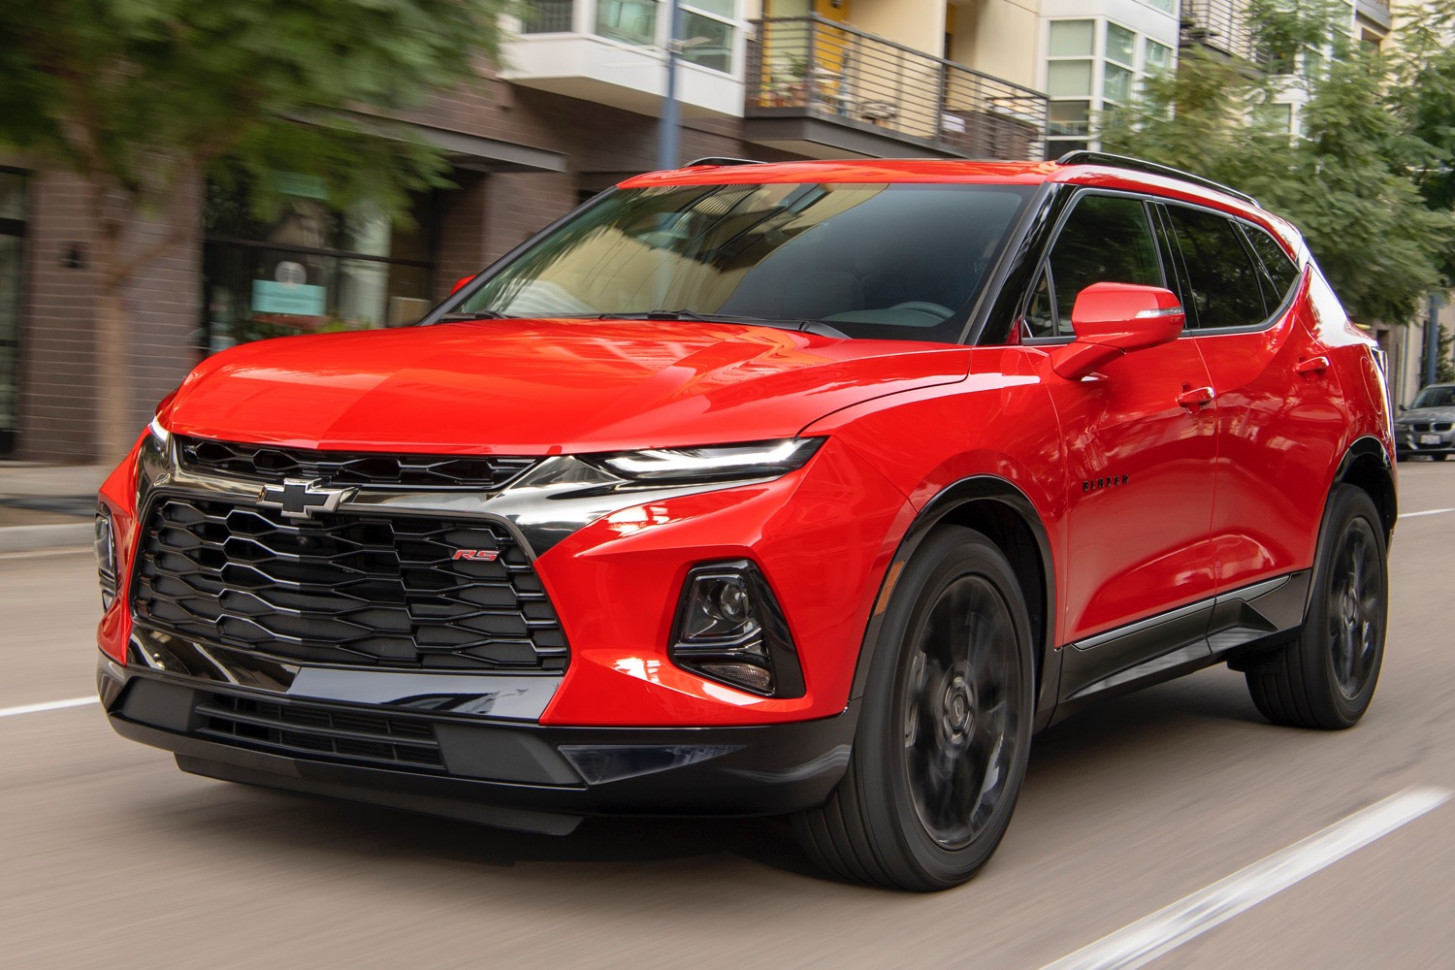 6 Chevrolet Blazer Turbo, Redline Edition Pricing Revealed | GM ..